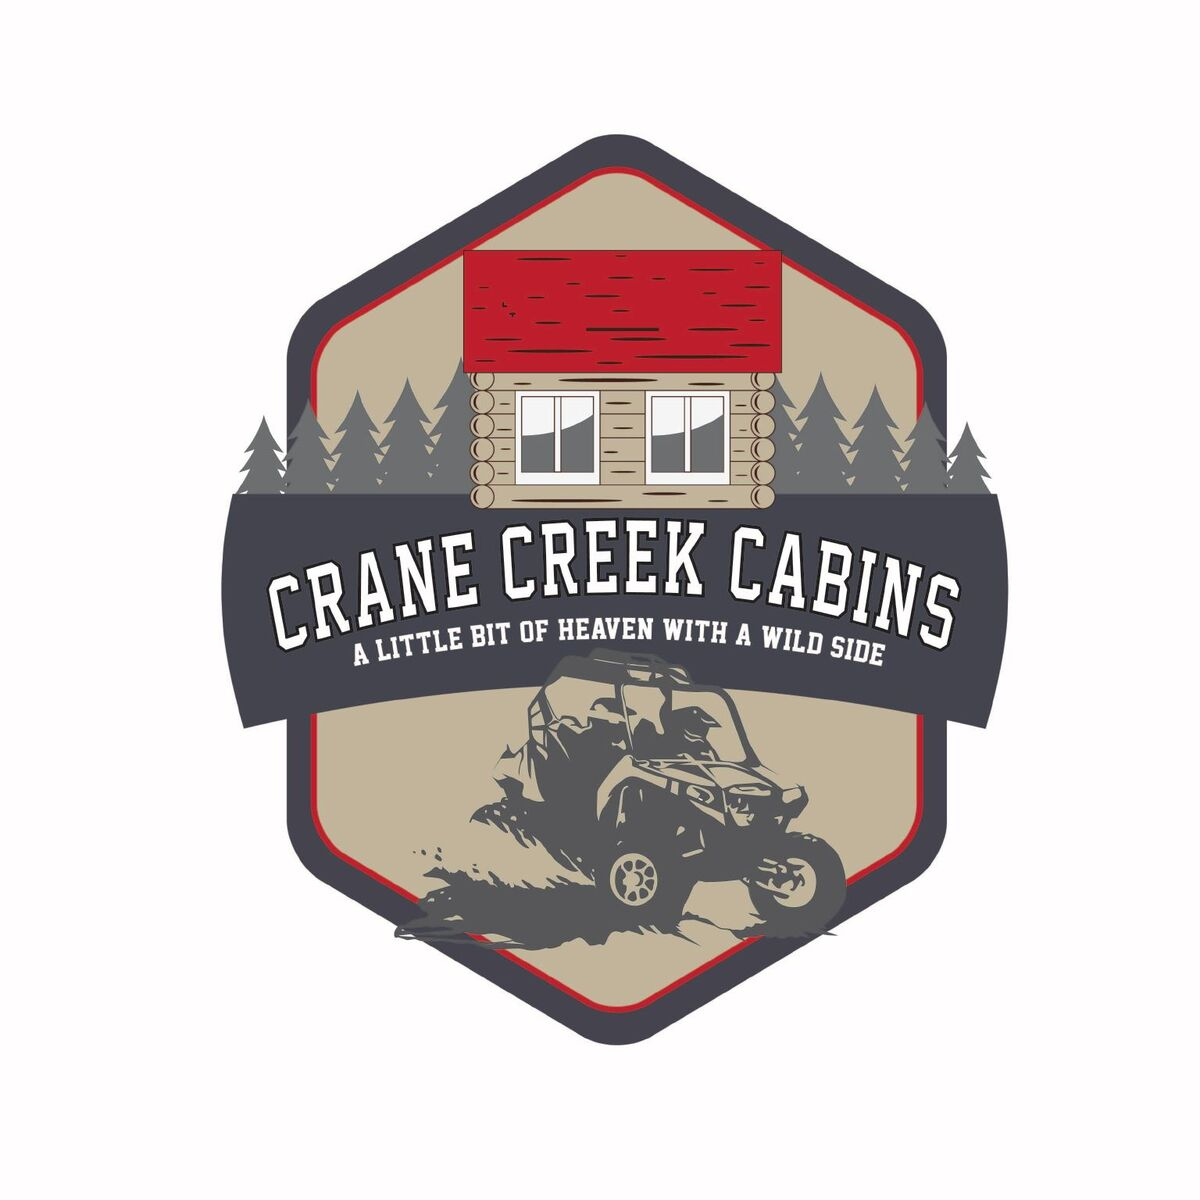 Crane Creek Cabins